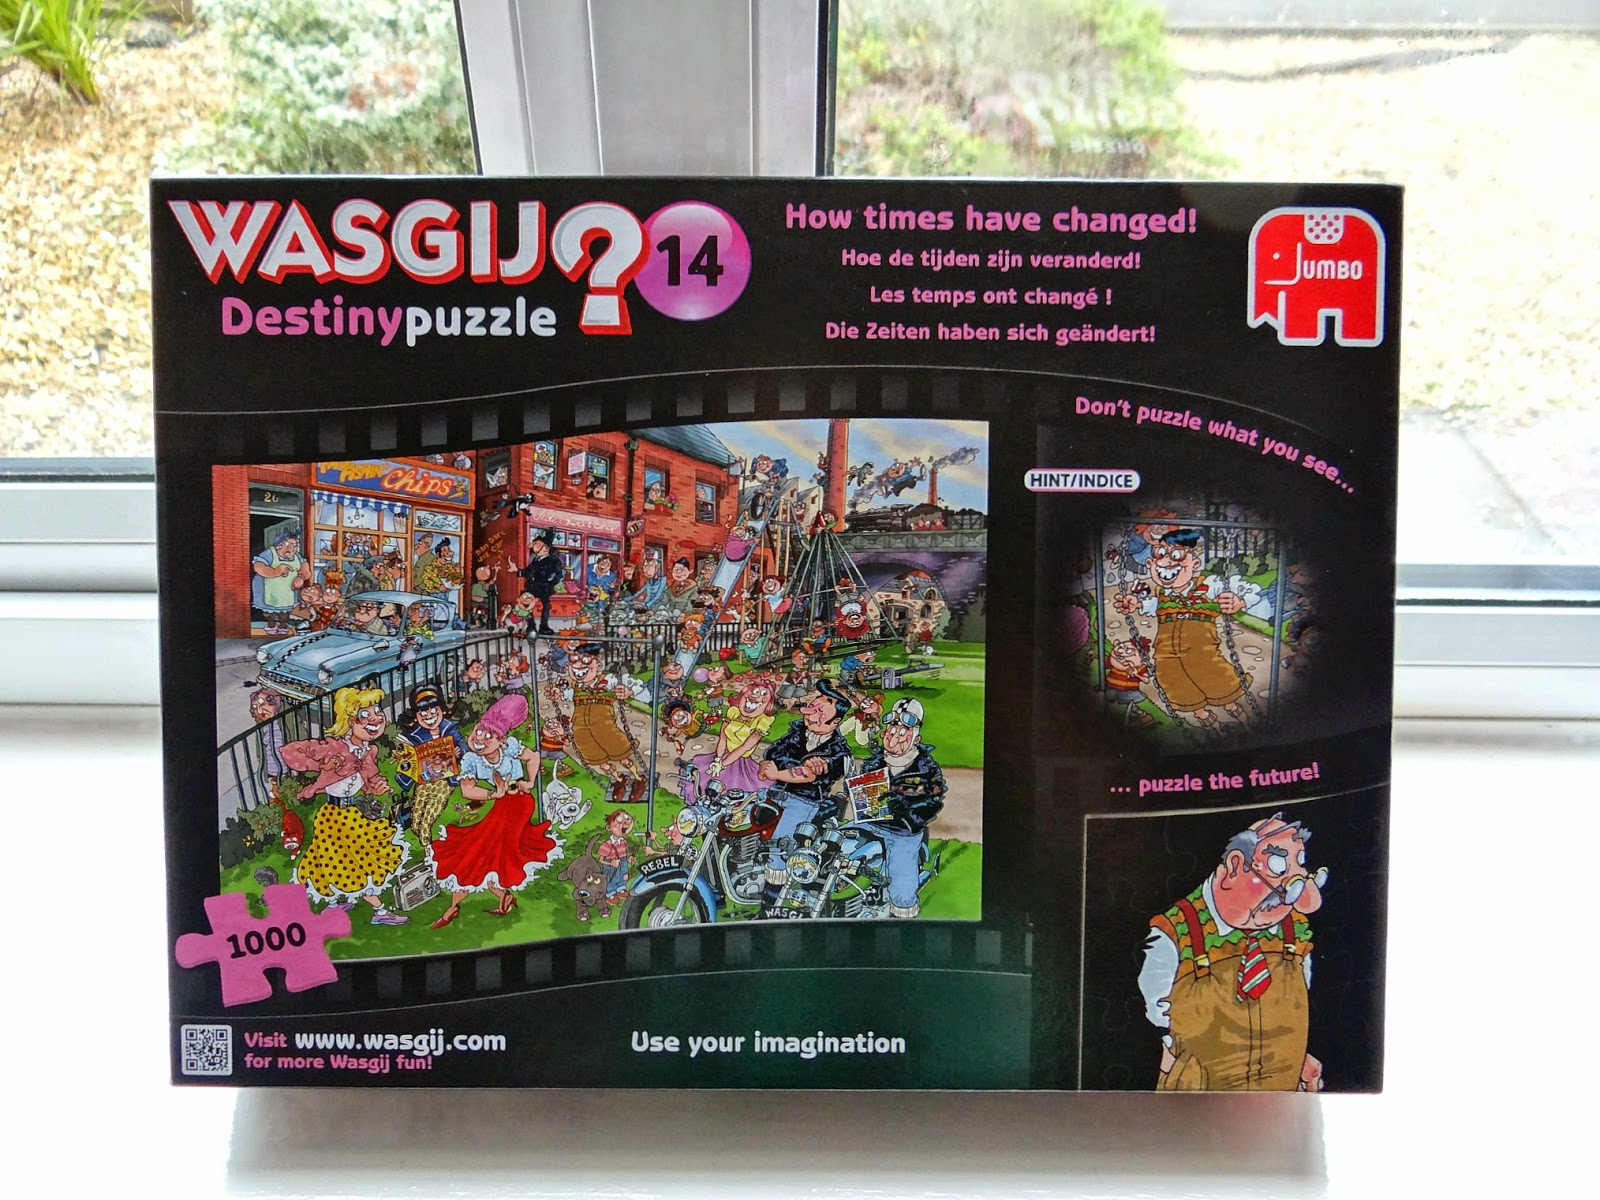 Wasgij puzzle, Jumbo puzzle, Wasgij puzzle competition